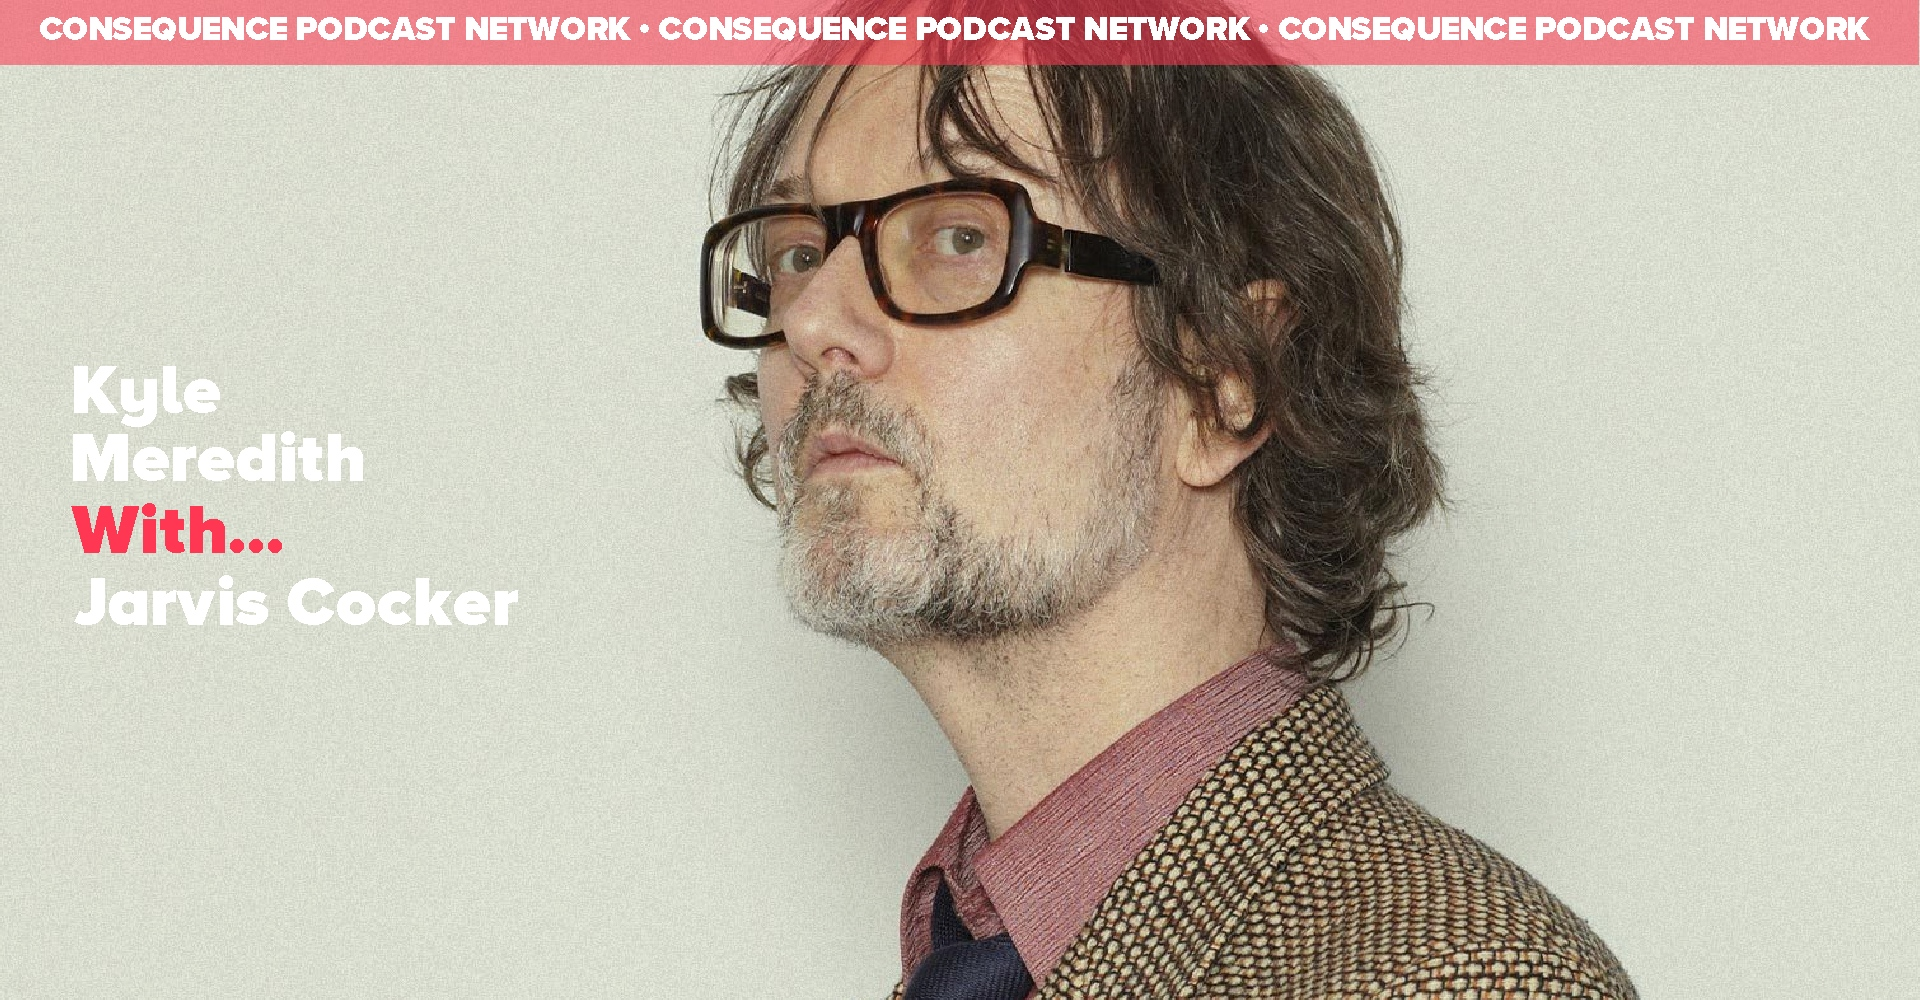 Jarvis Cocker on the Need for Communication